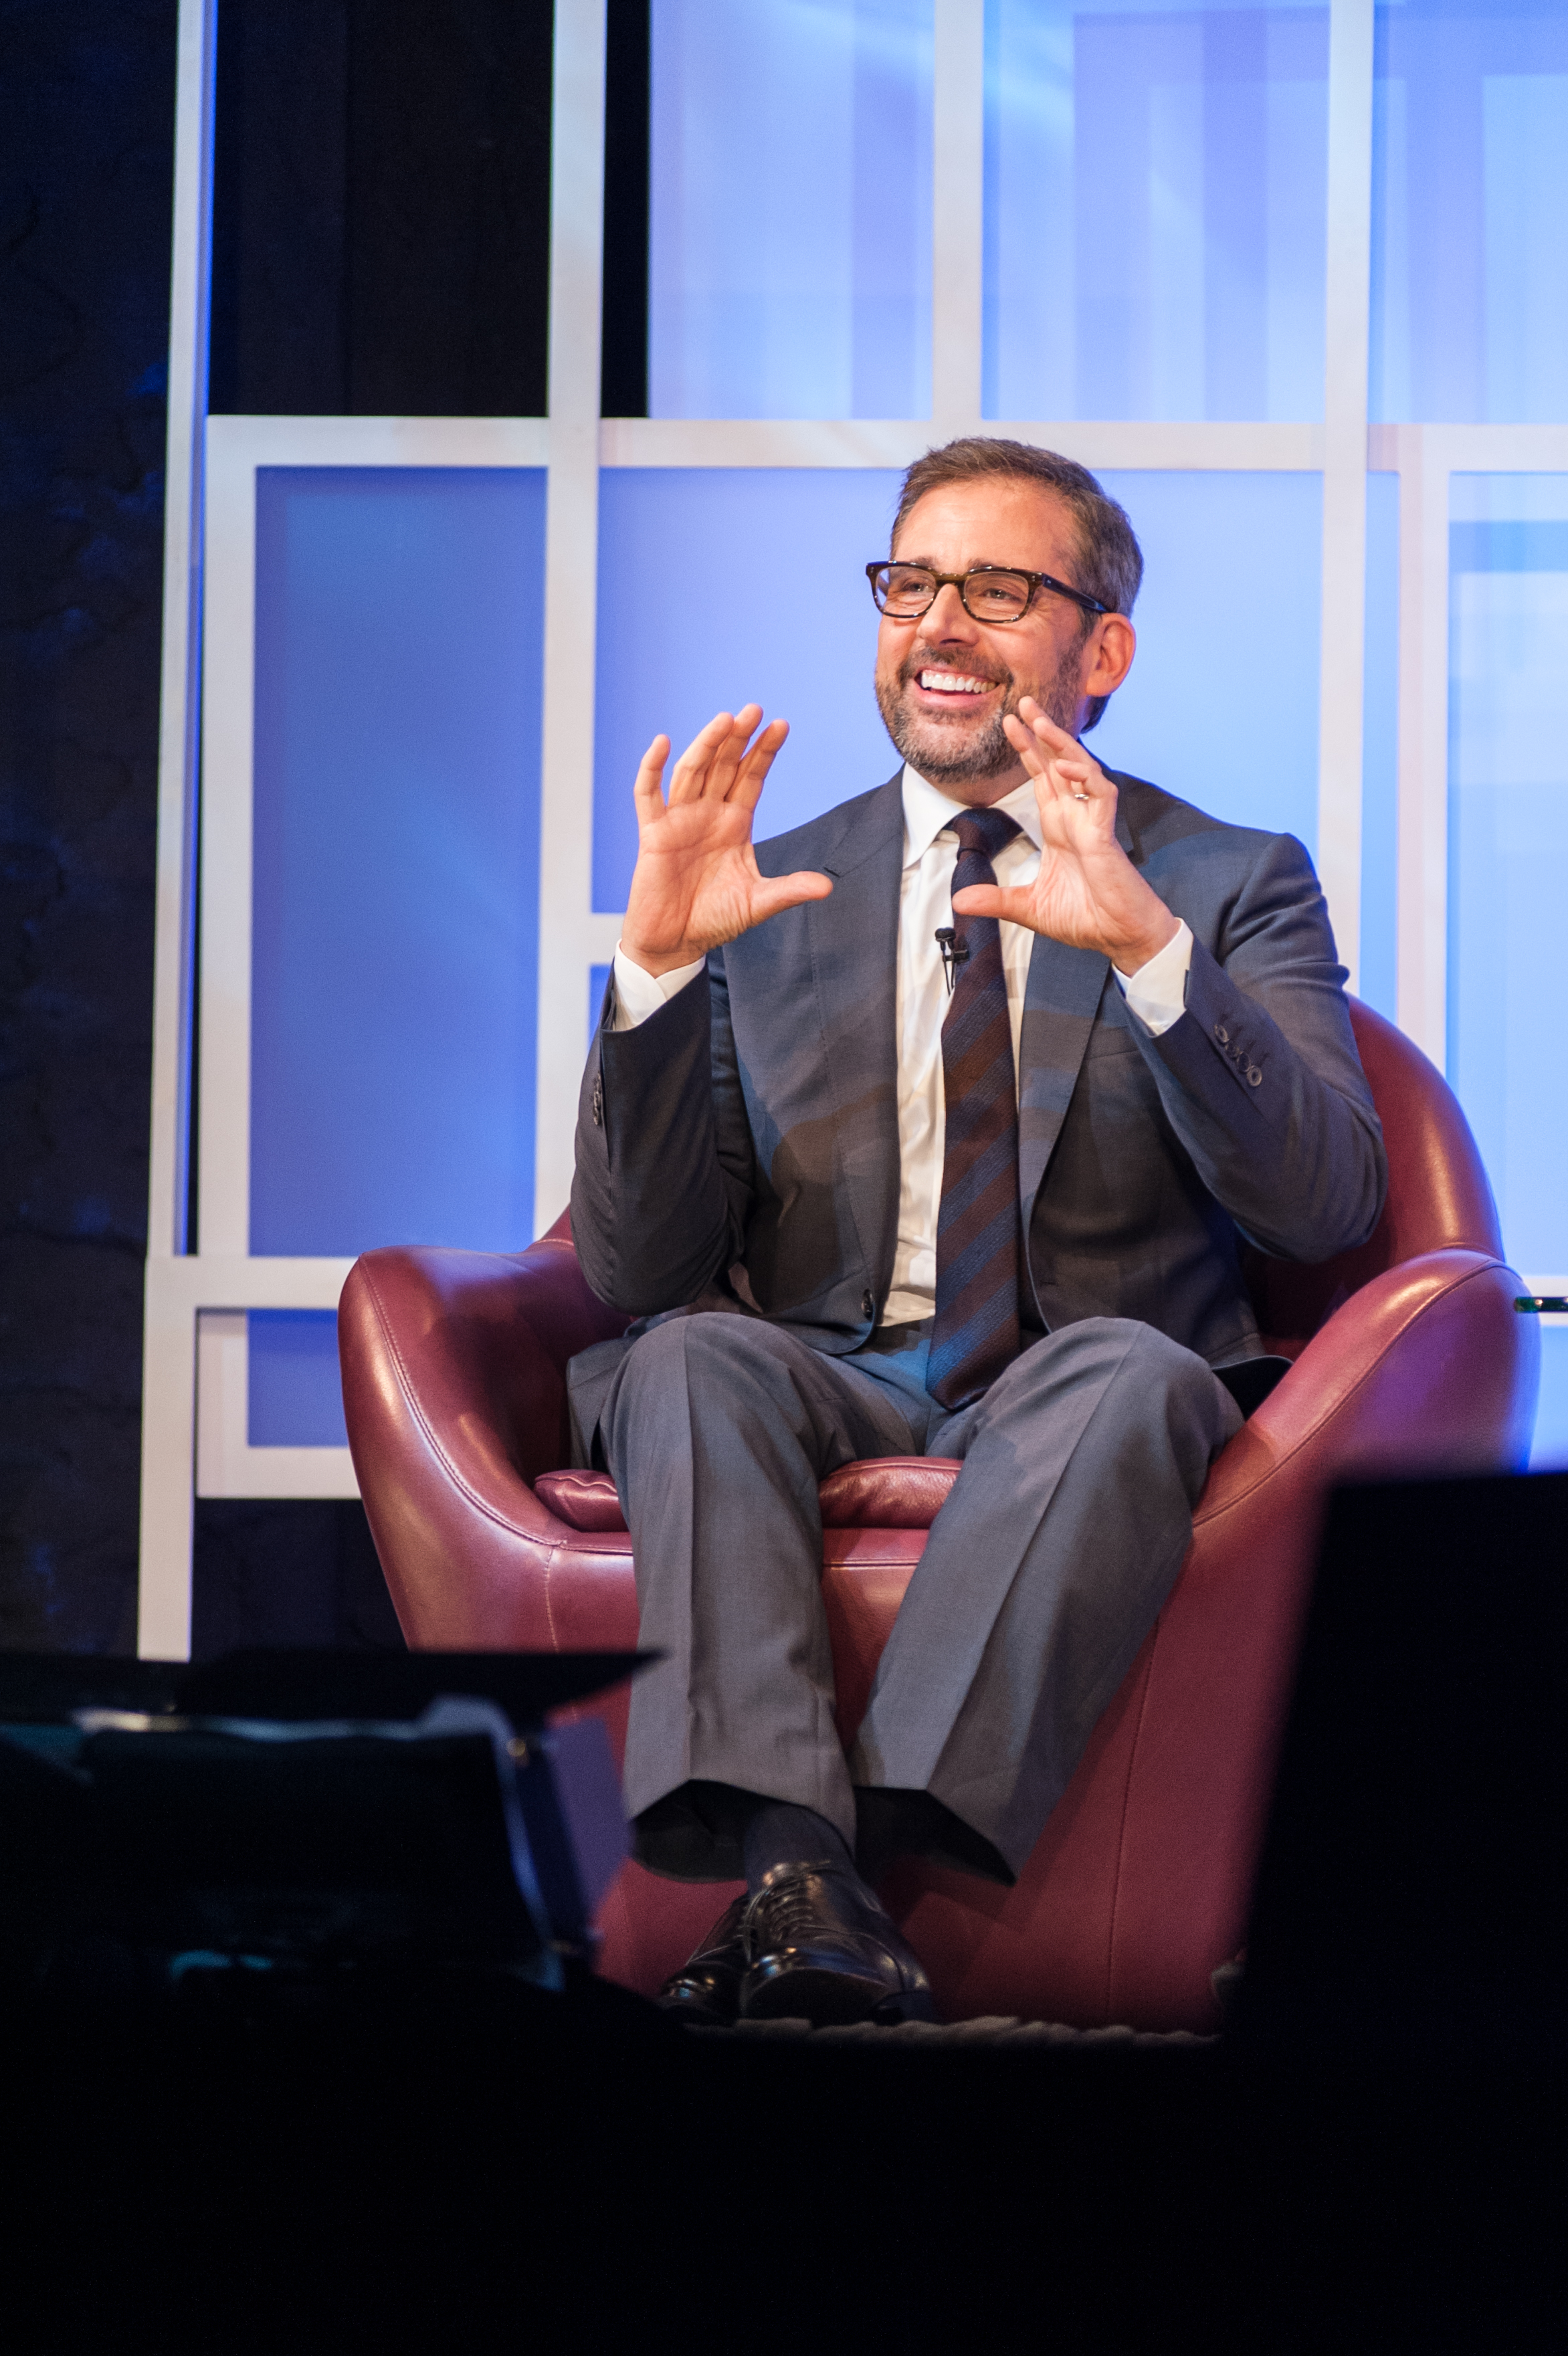 Steve Carell revisits his film career during his tribute event on Feb. 5 (Lorenzo Basilio/Daily Nexus)